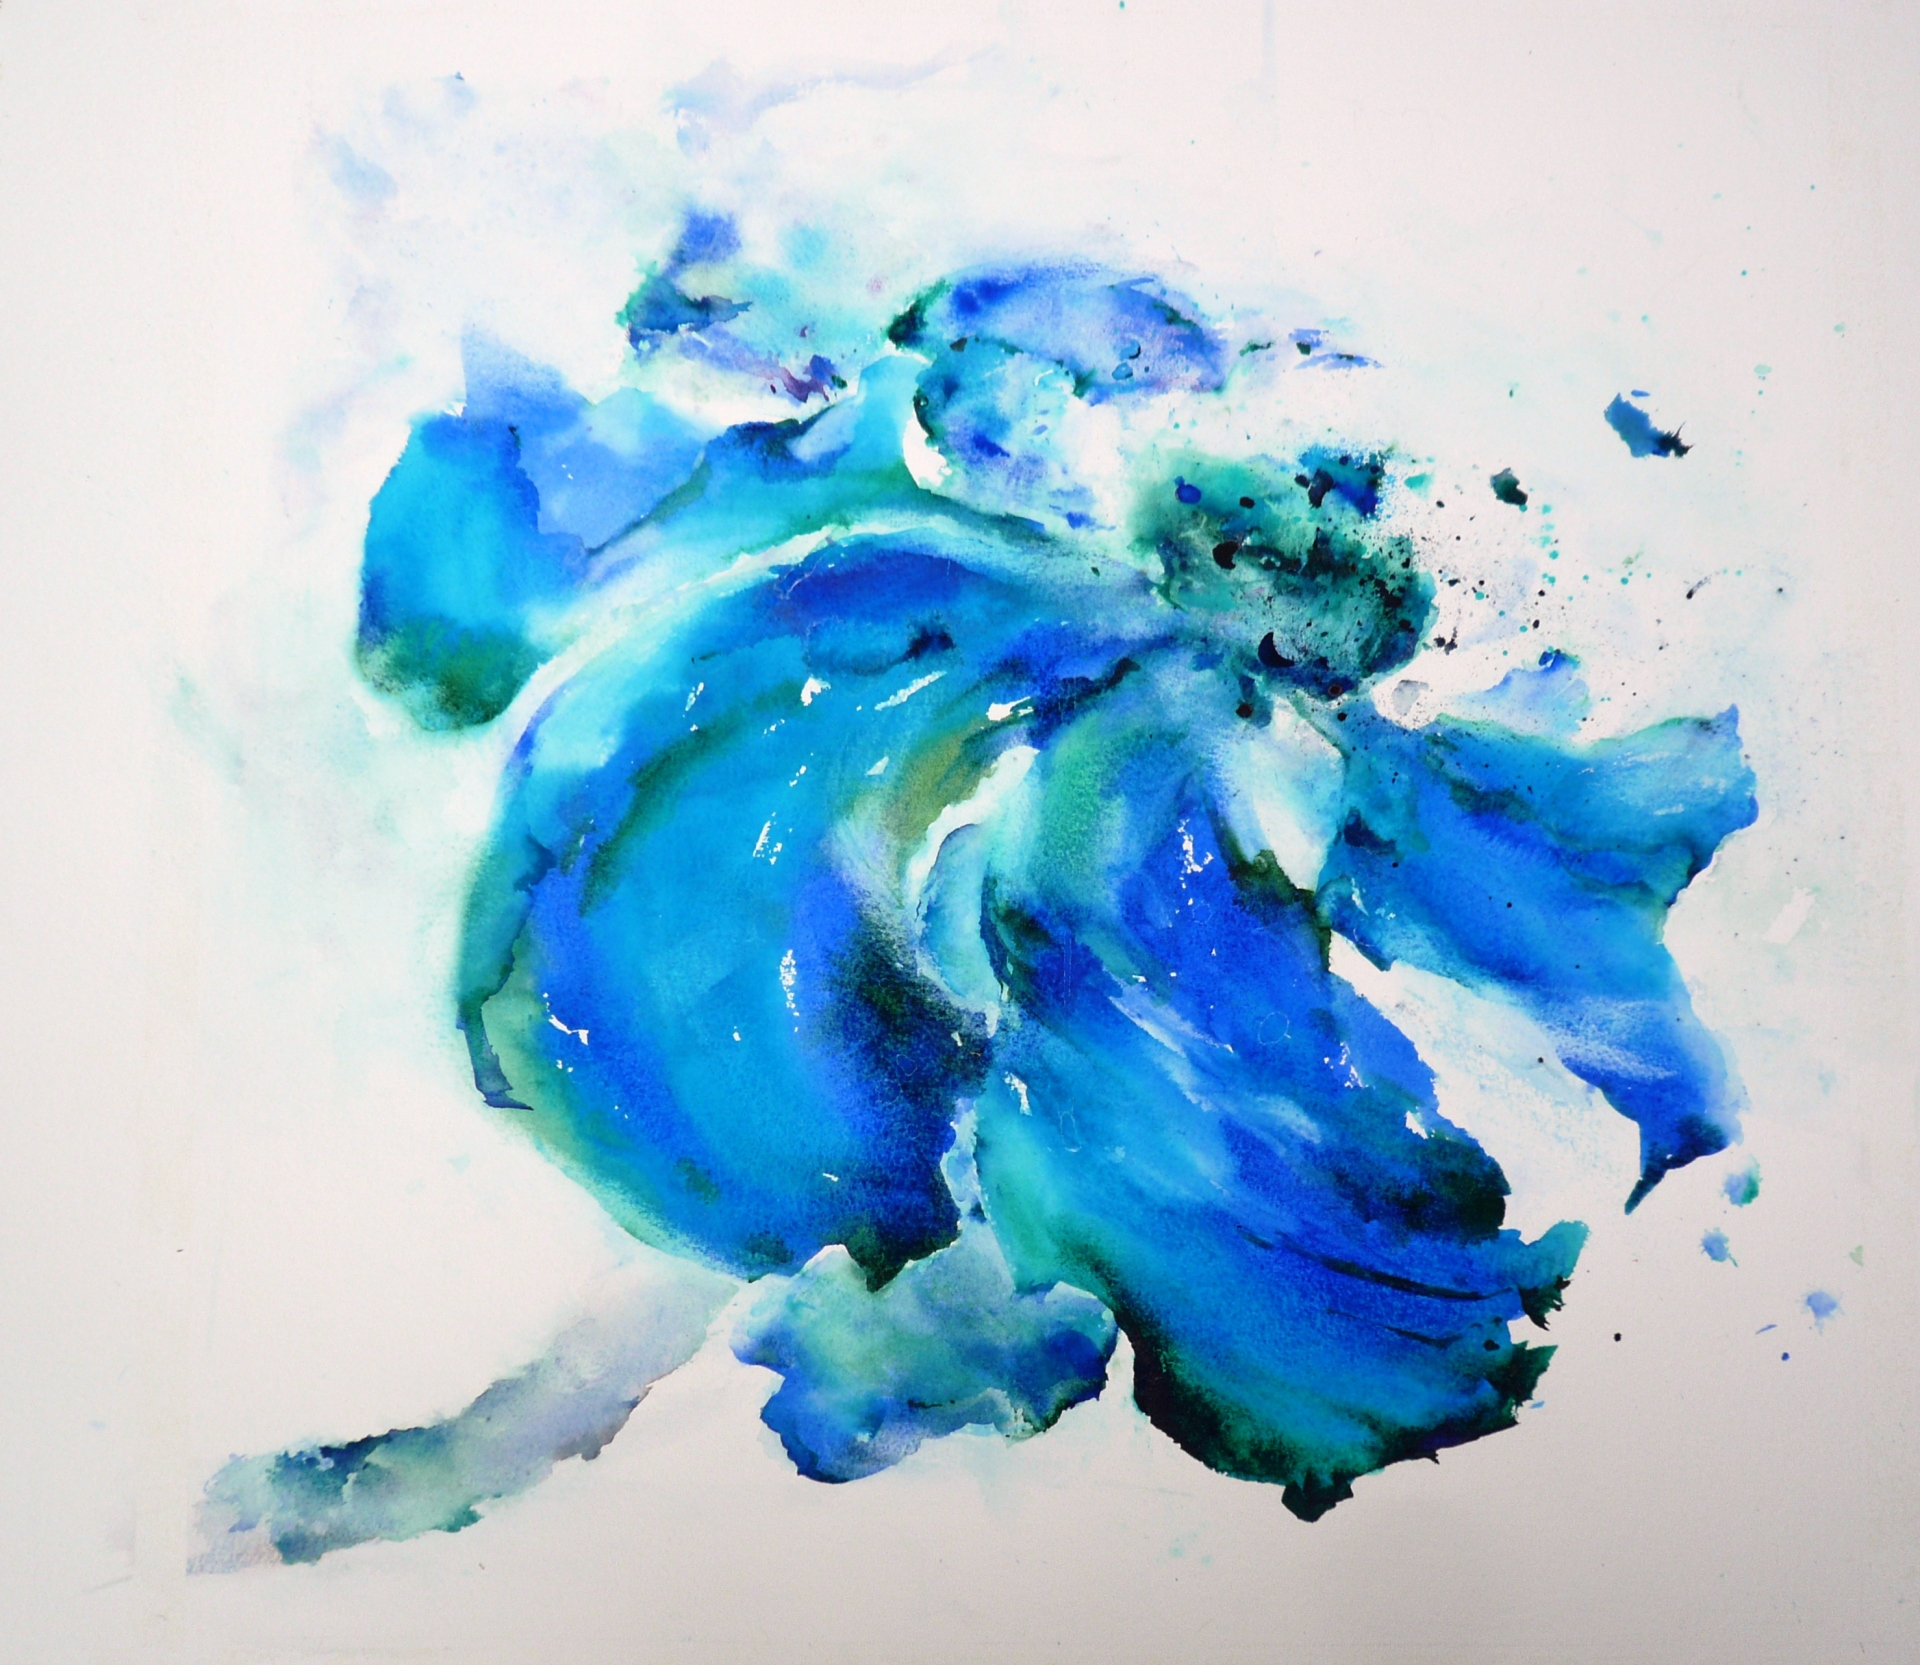 watercolor painting of a large windblown blue and green flower with broad petals containing ocean floor scenery inside them